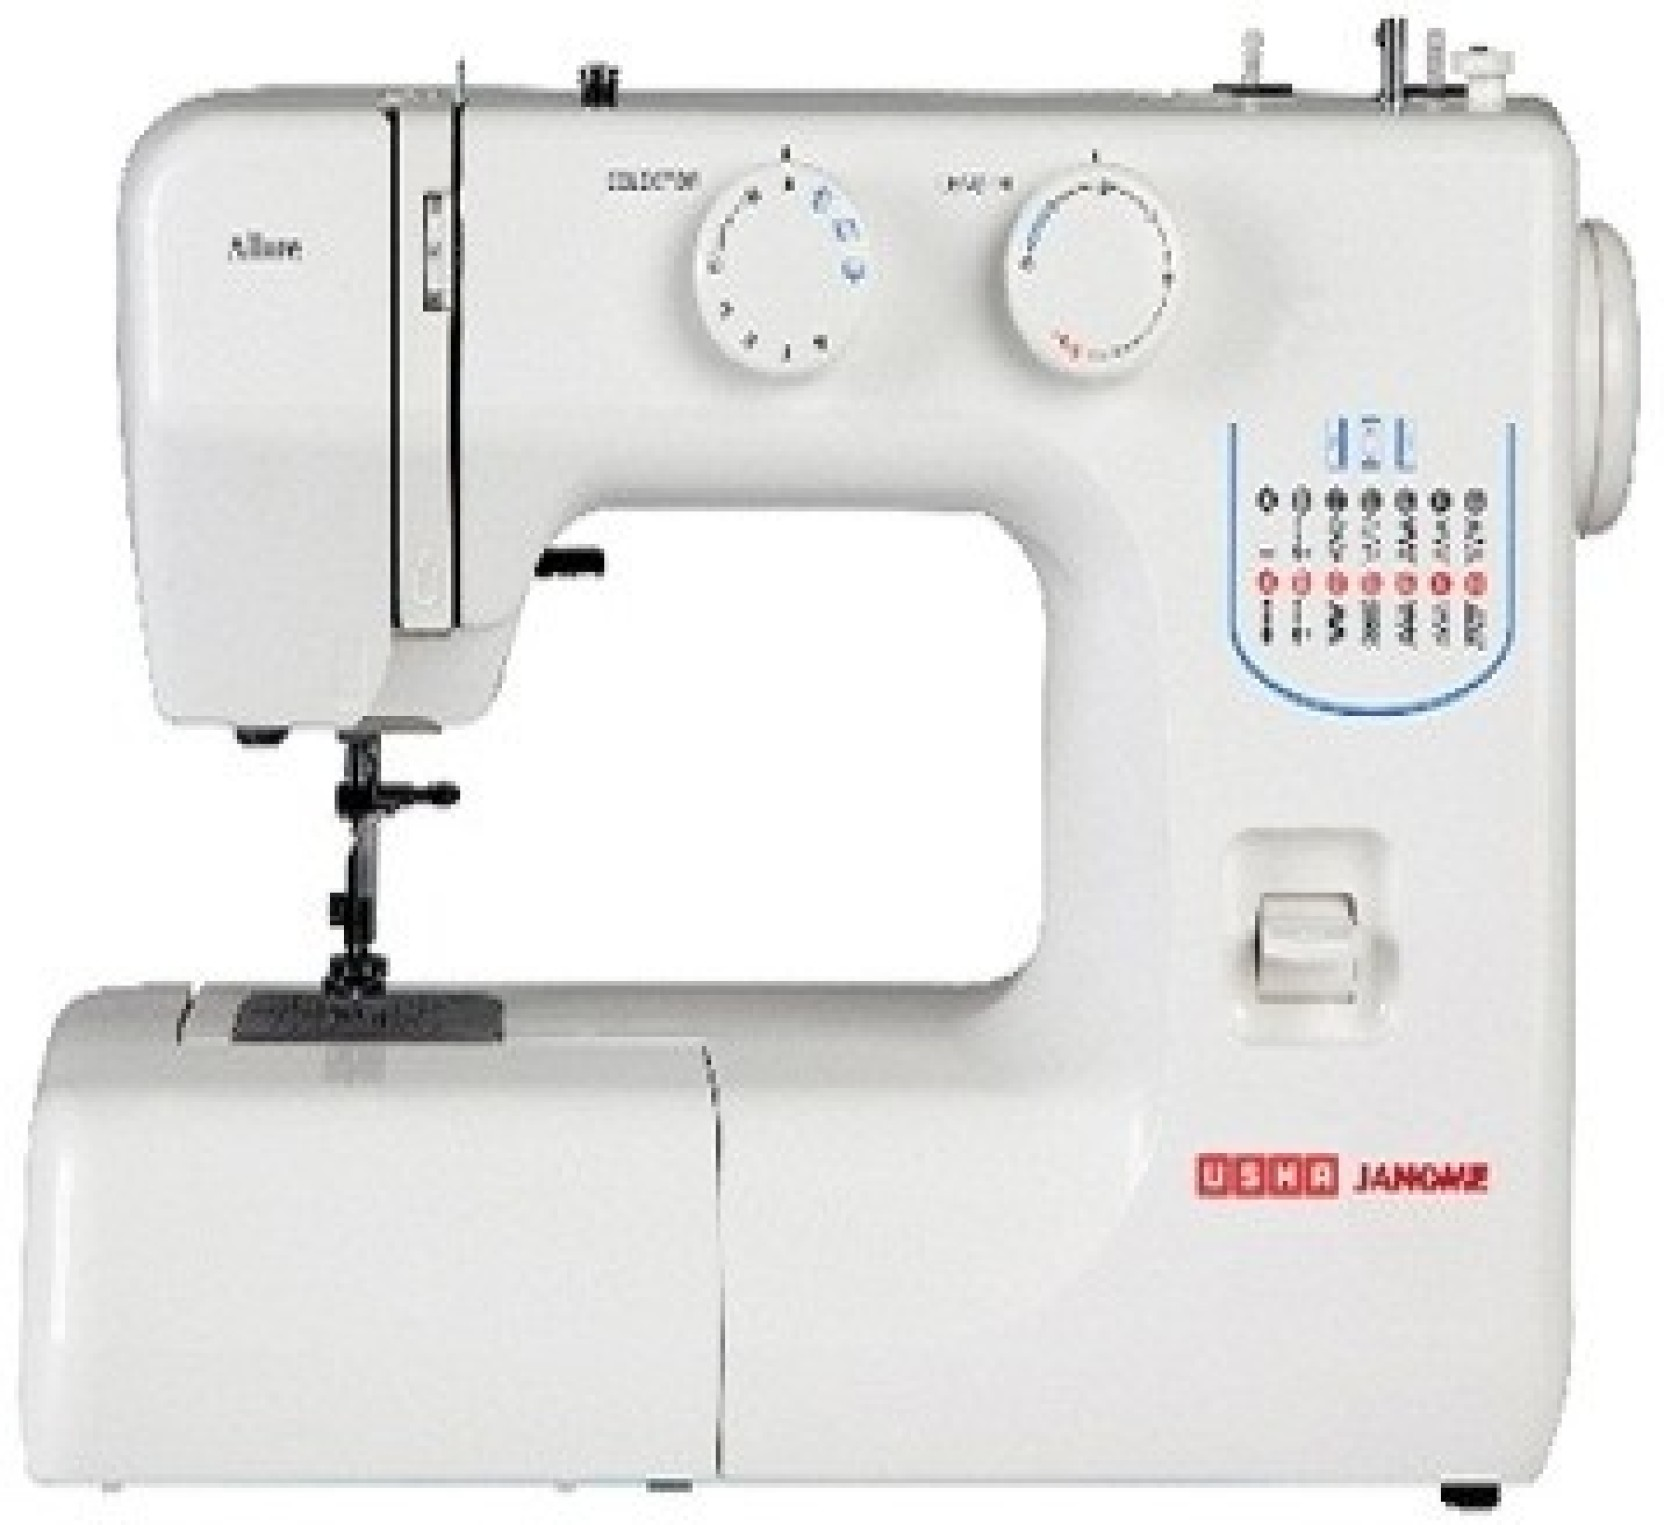 Electrical Sewing Machine : Usha allure electric sewing machine price in india buy